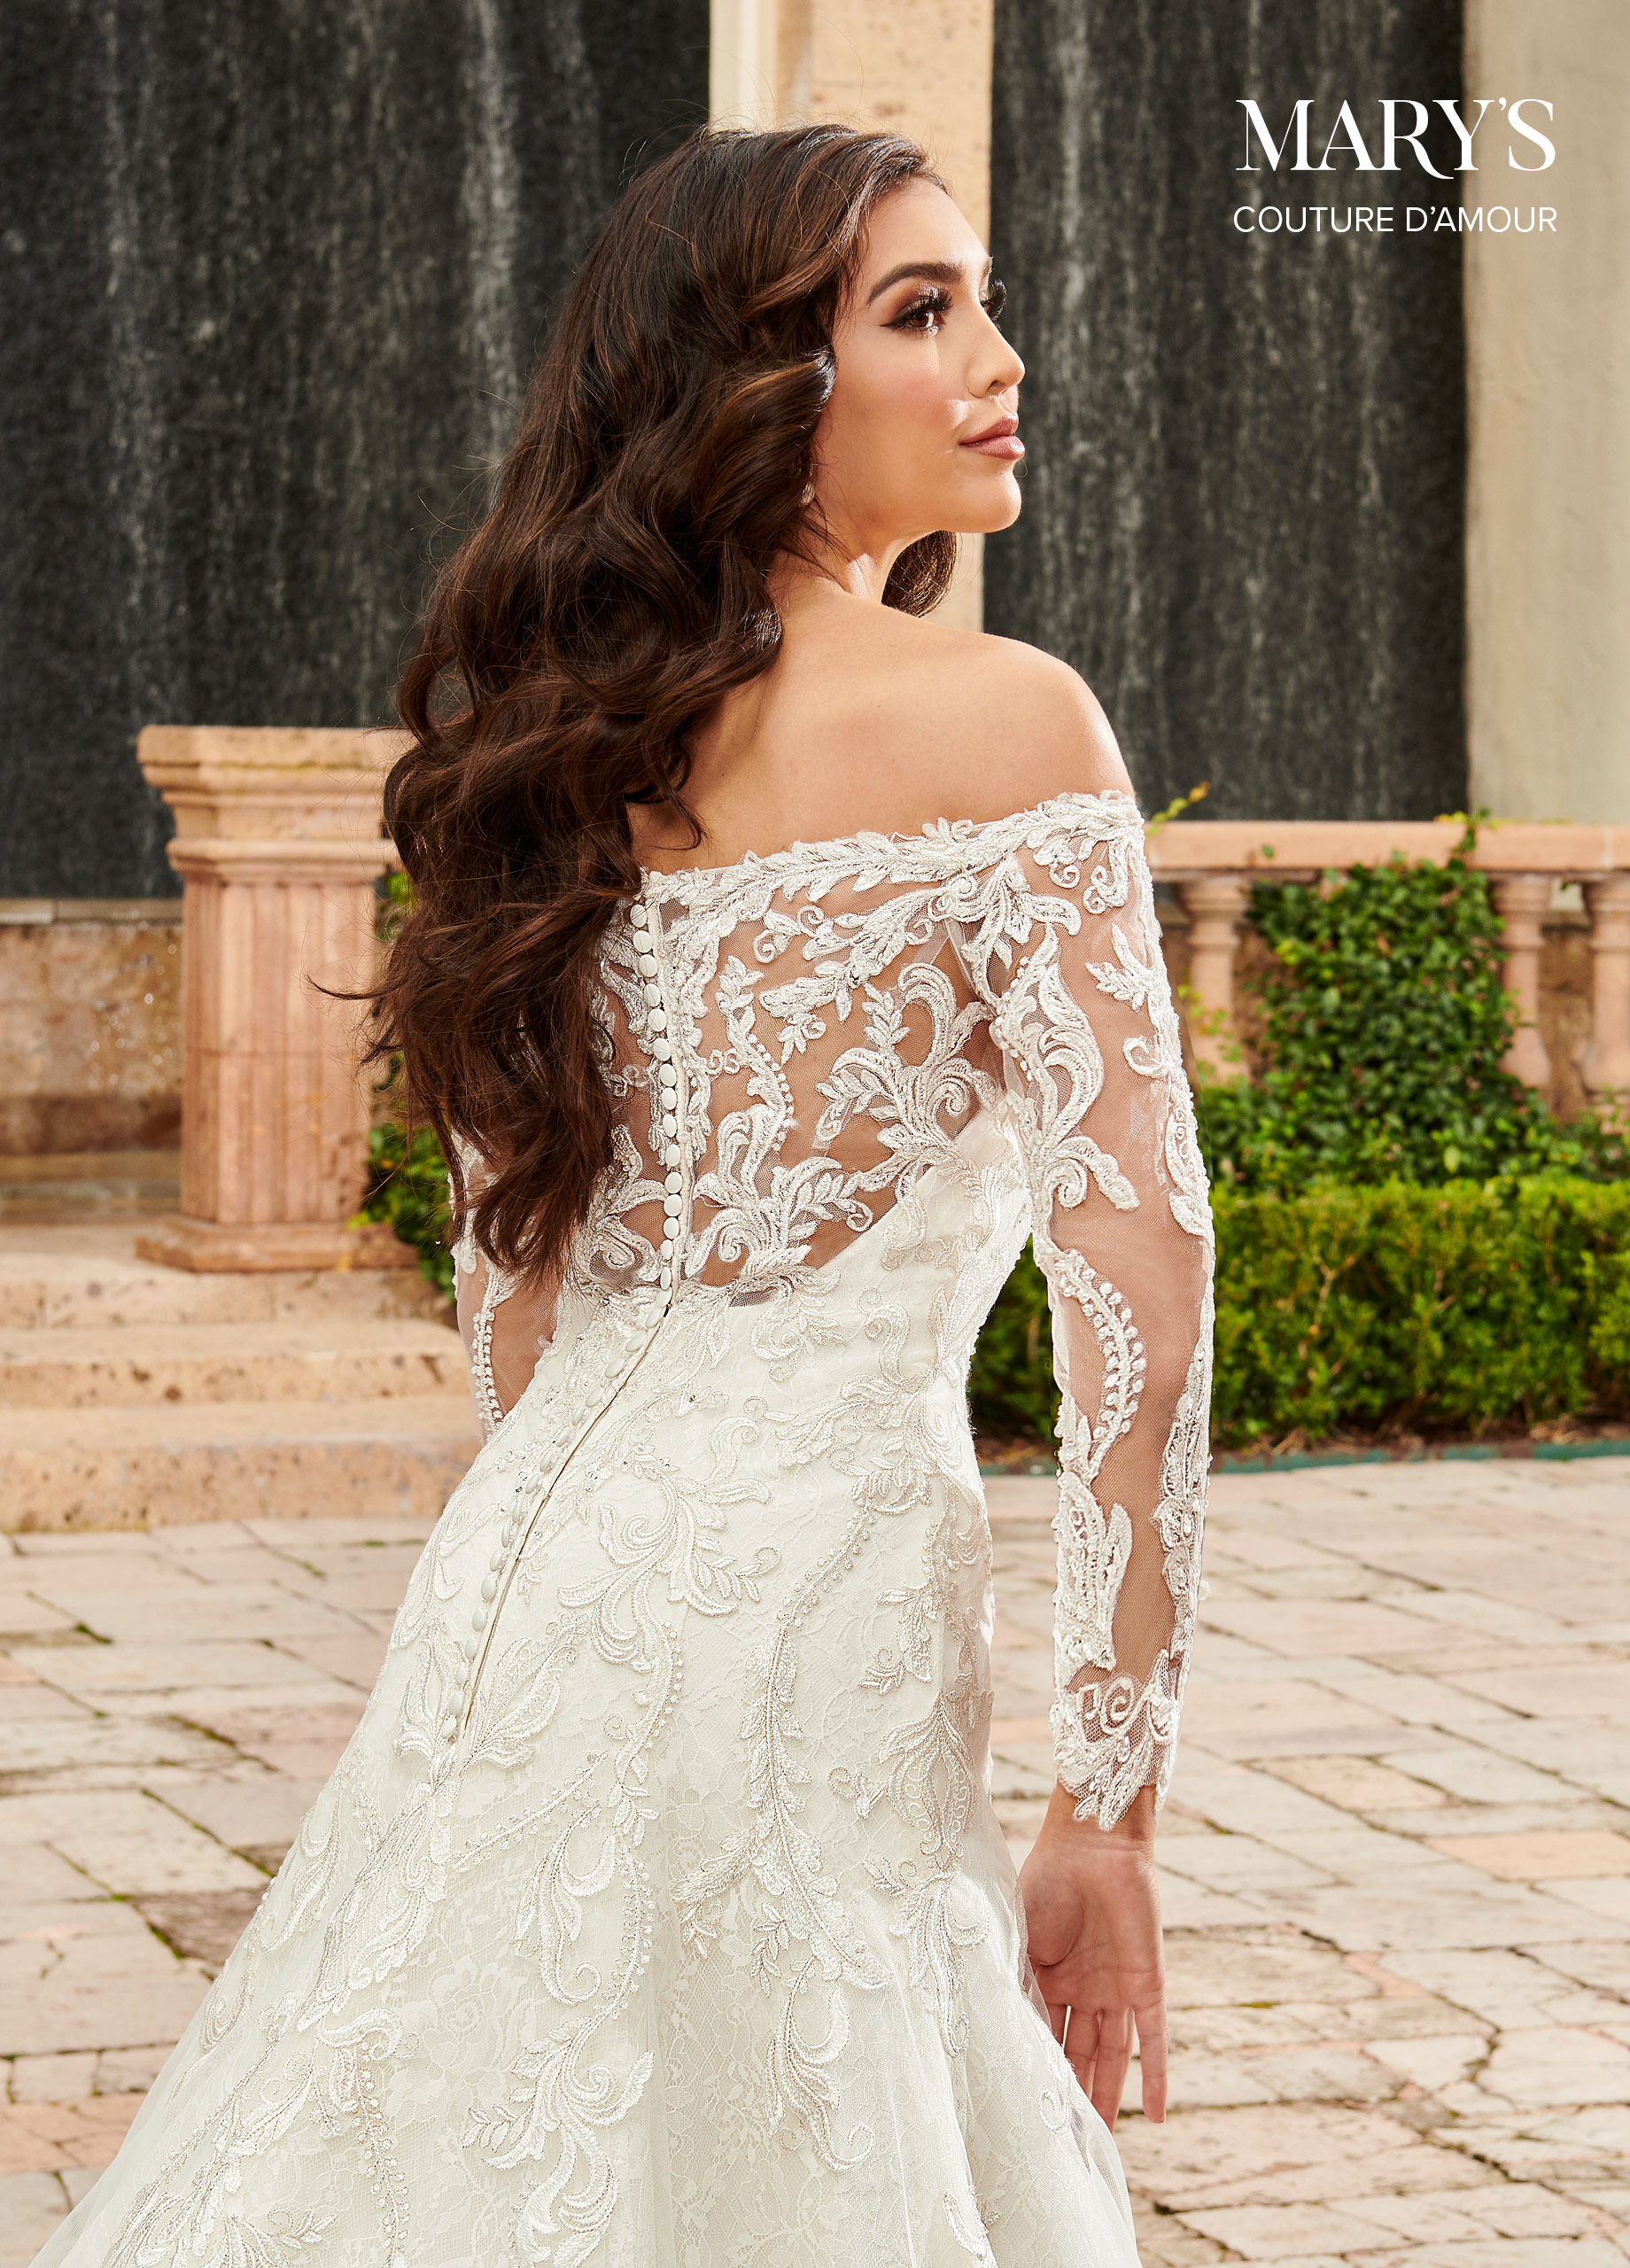 Couture Damour Bridal Dresses | Couture d'Amour | Style - MB4112